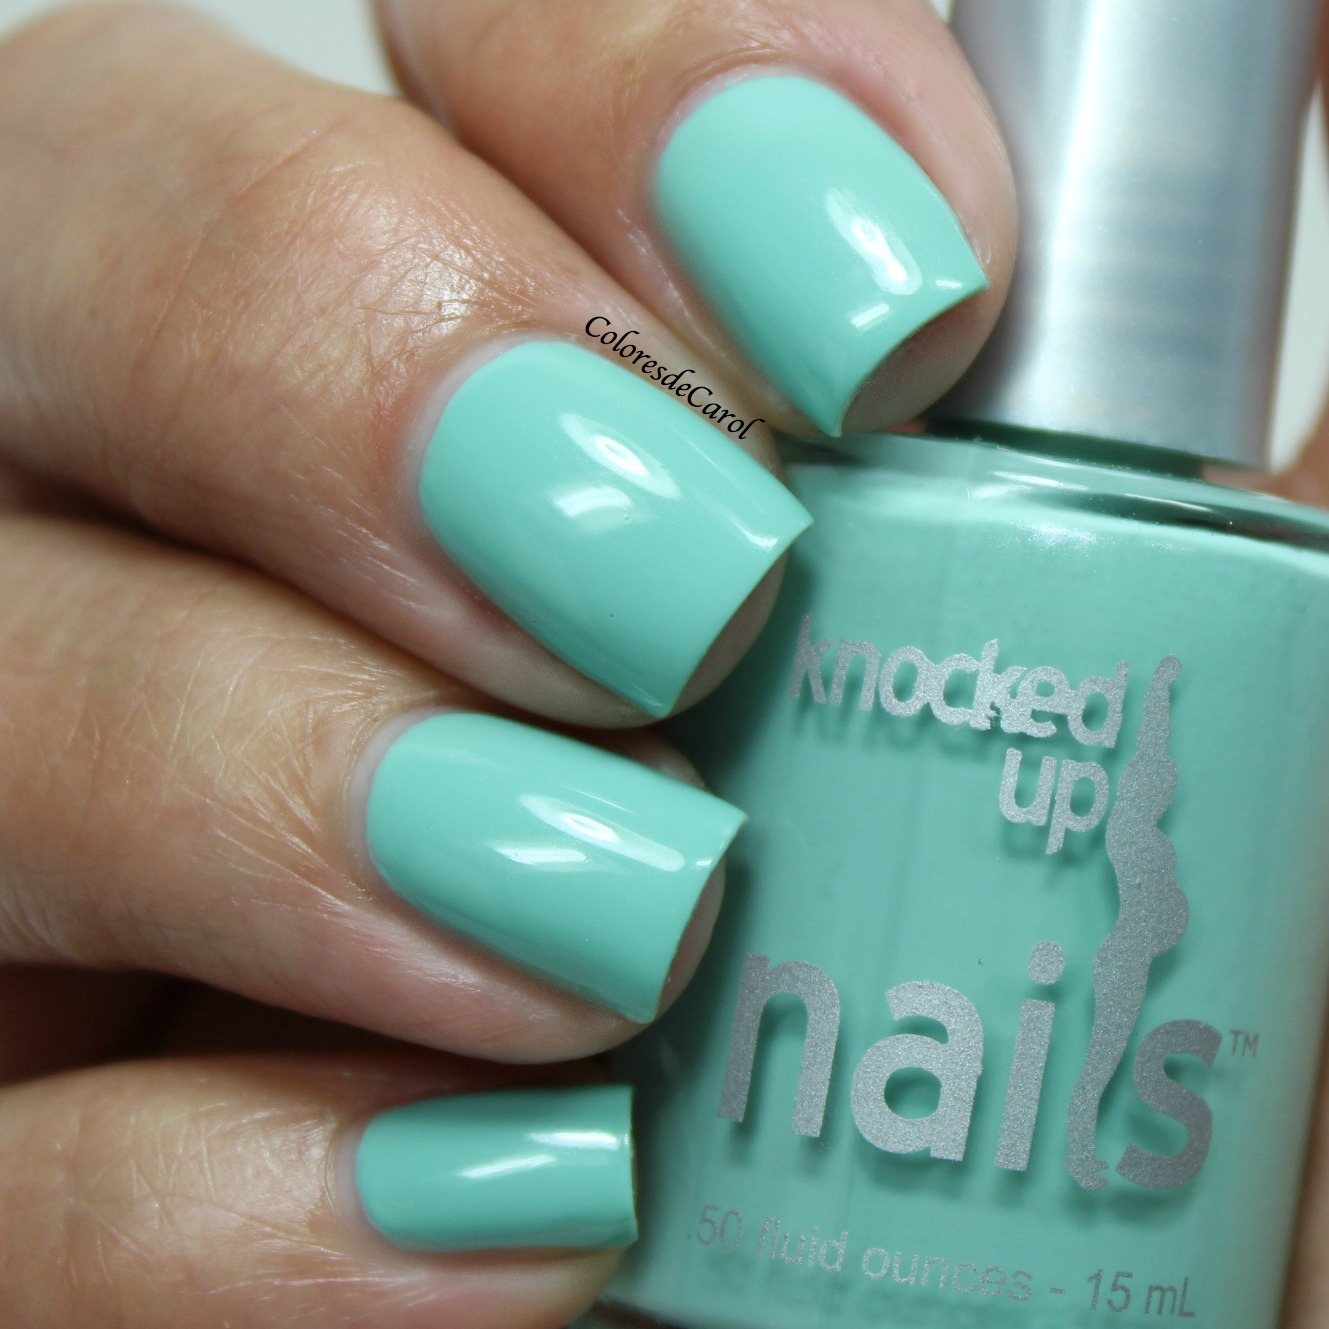 Colores de Carol: Knocked Up Nails - Swatches, Review and Giveaway.